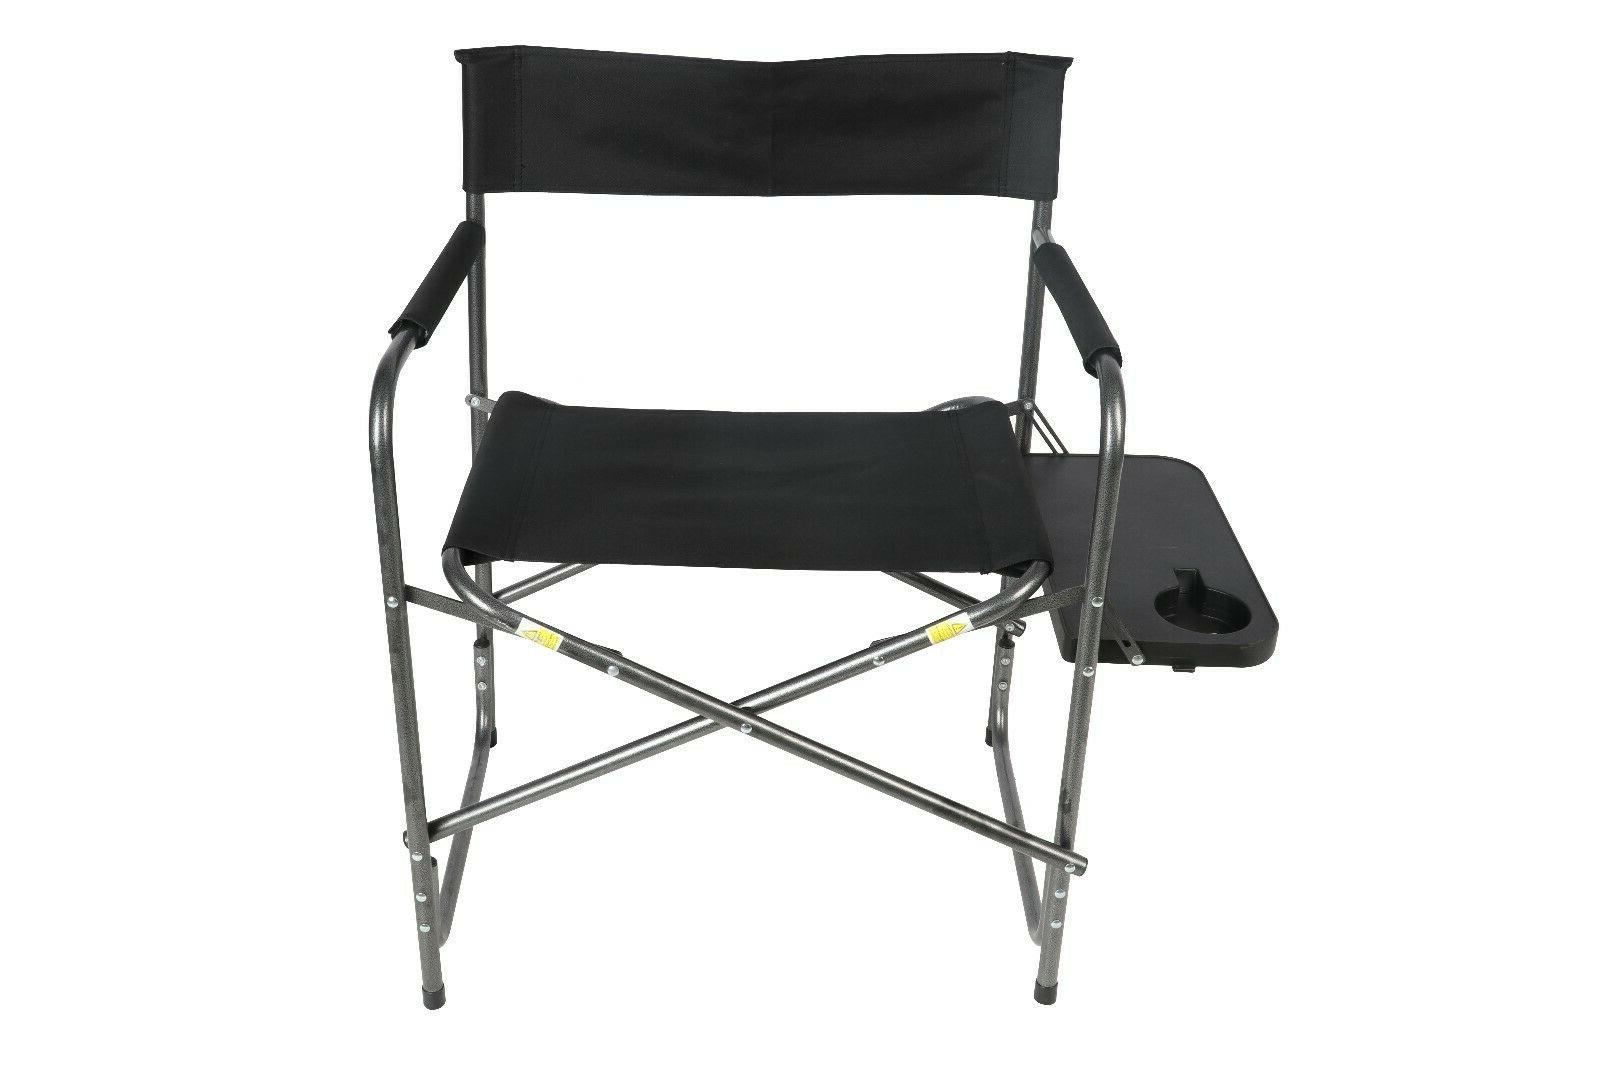 camping outdoor directors chair with foldout side